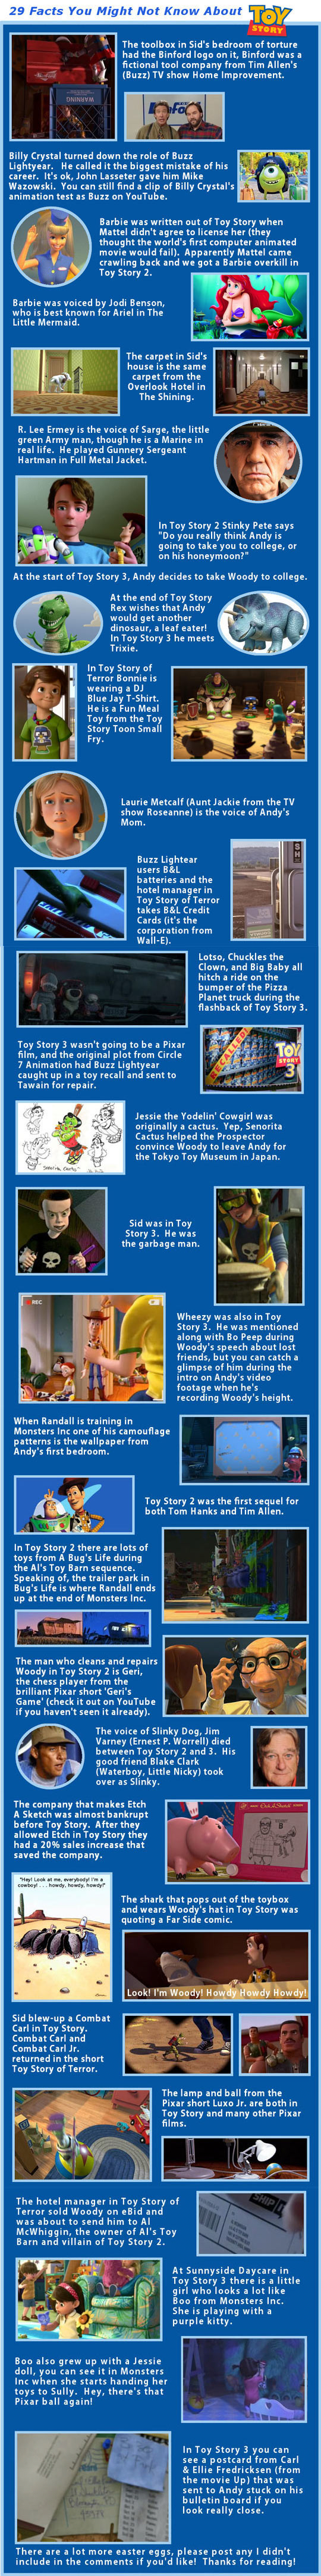 Facts About Toy Story You Probably Don